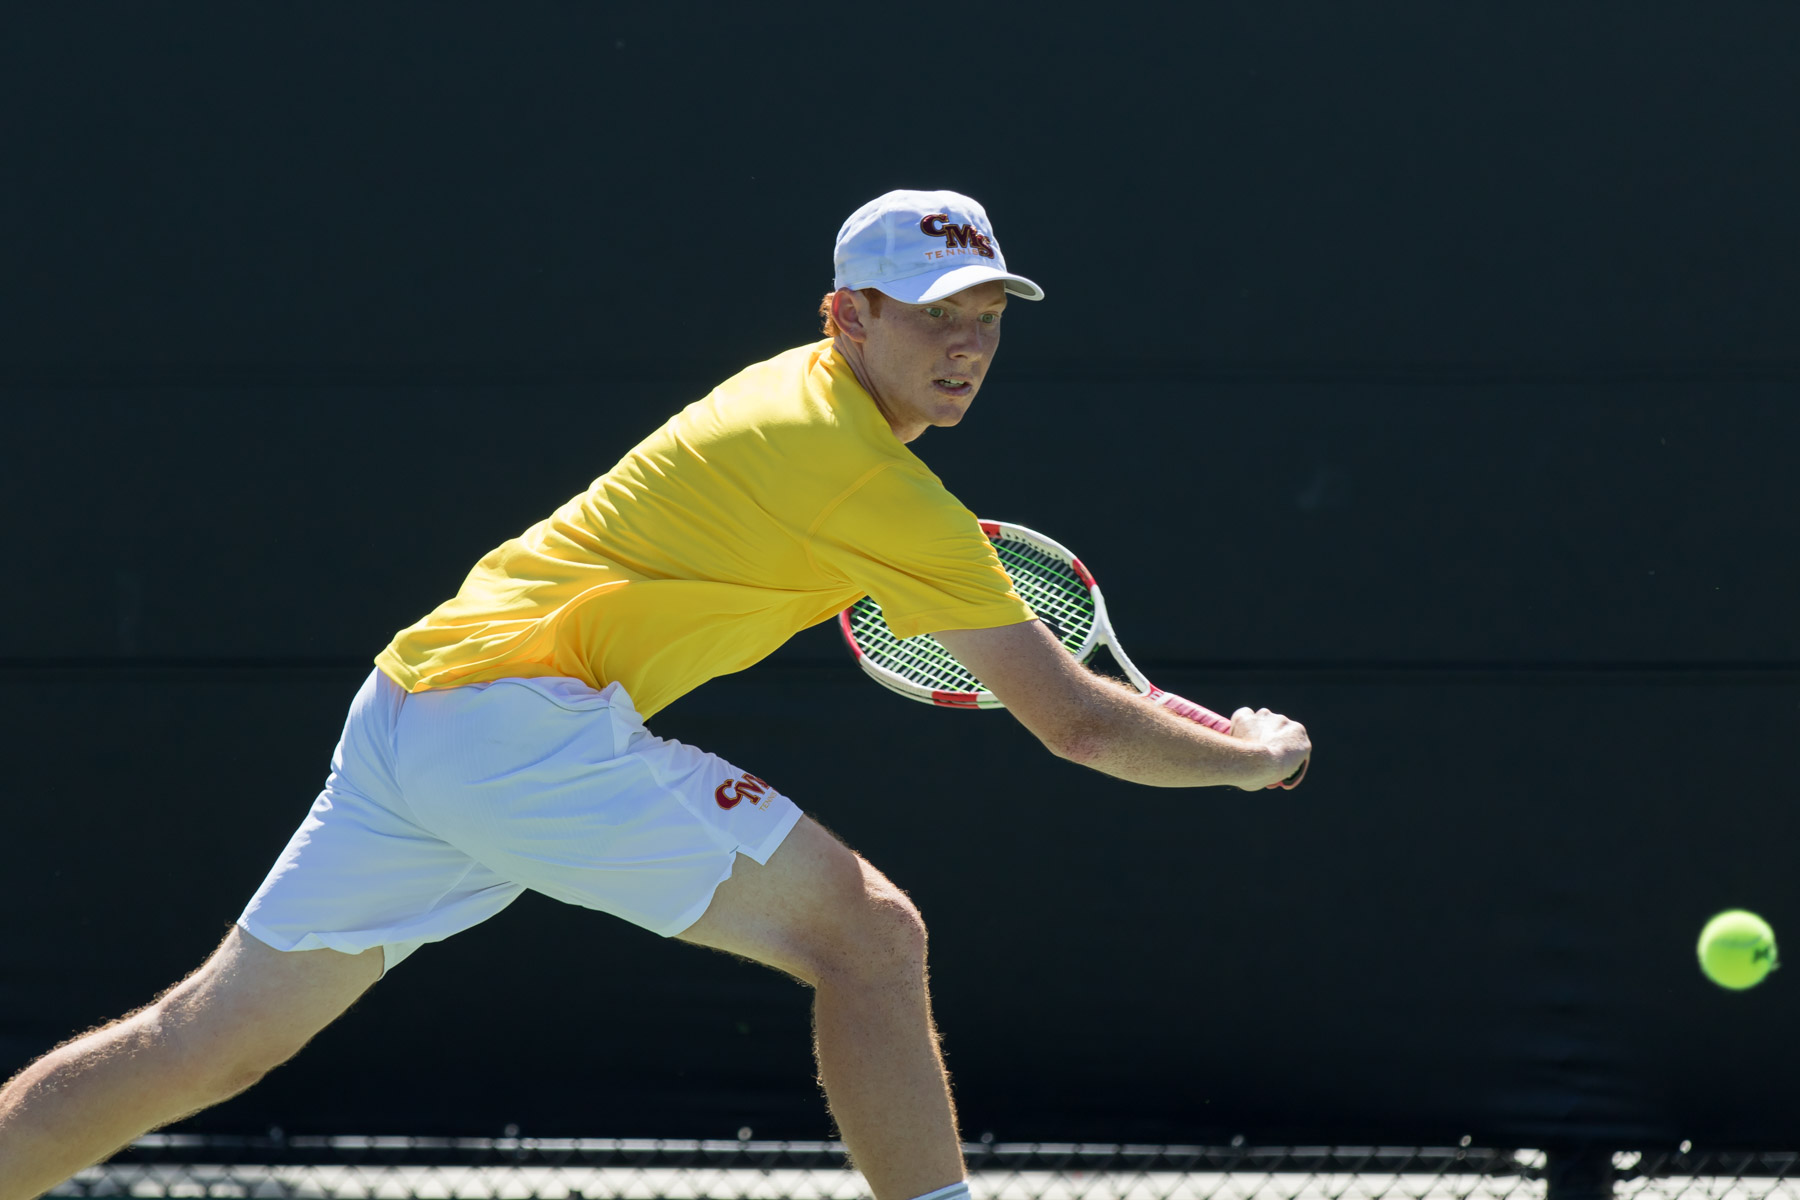 Stags Sweep Cardinals 5-0 to Advance to NCAA Men's Tennis Final Four